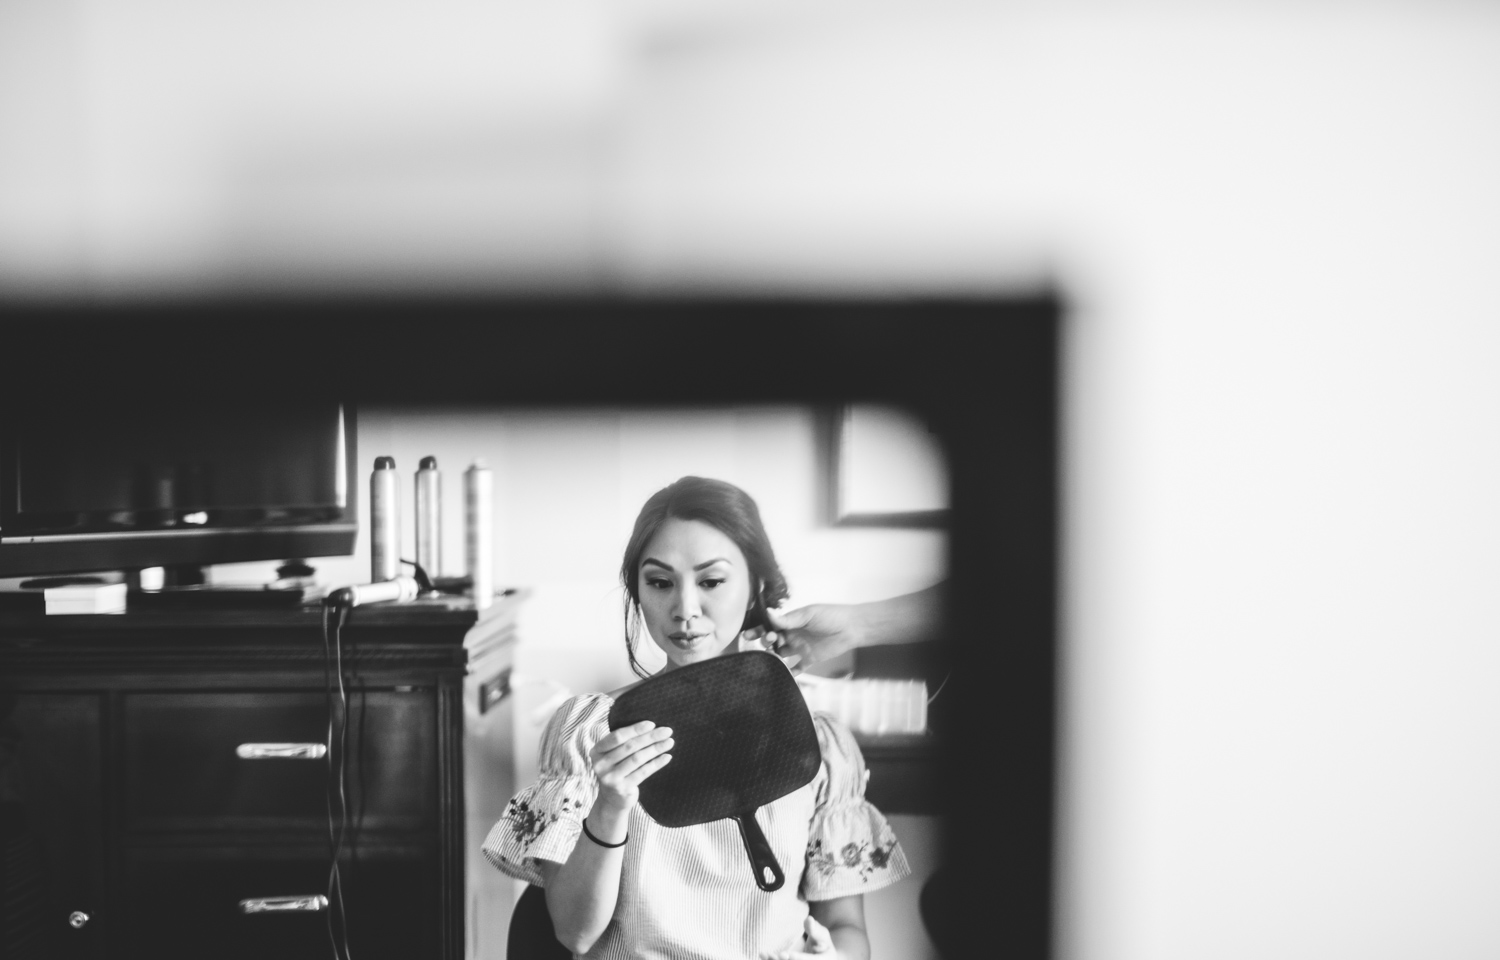 002 bride looking into mirror while getting ready black and white.jpg